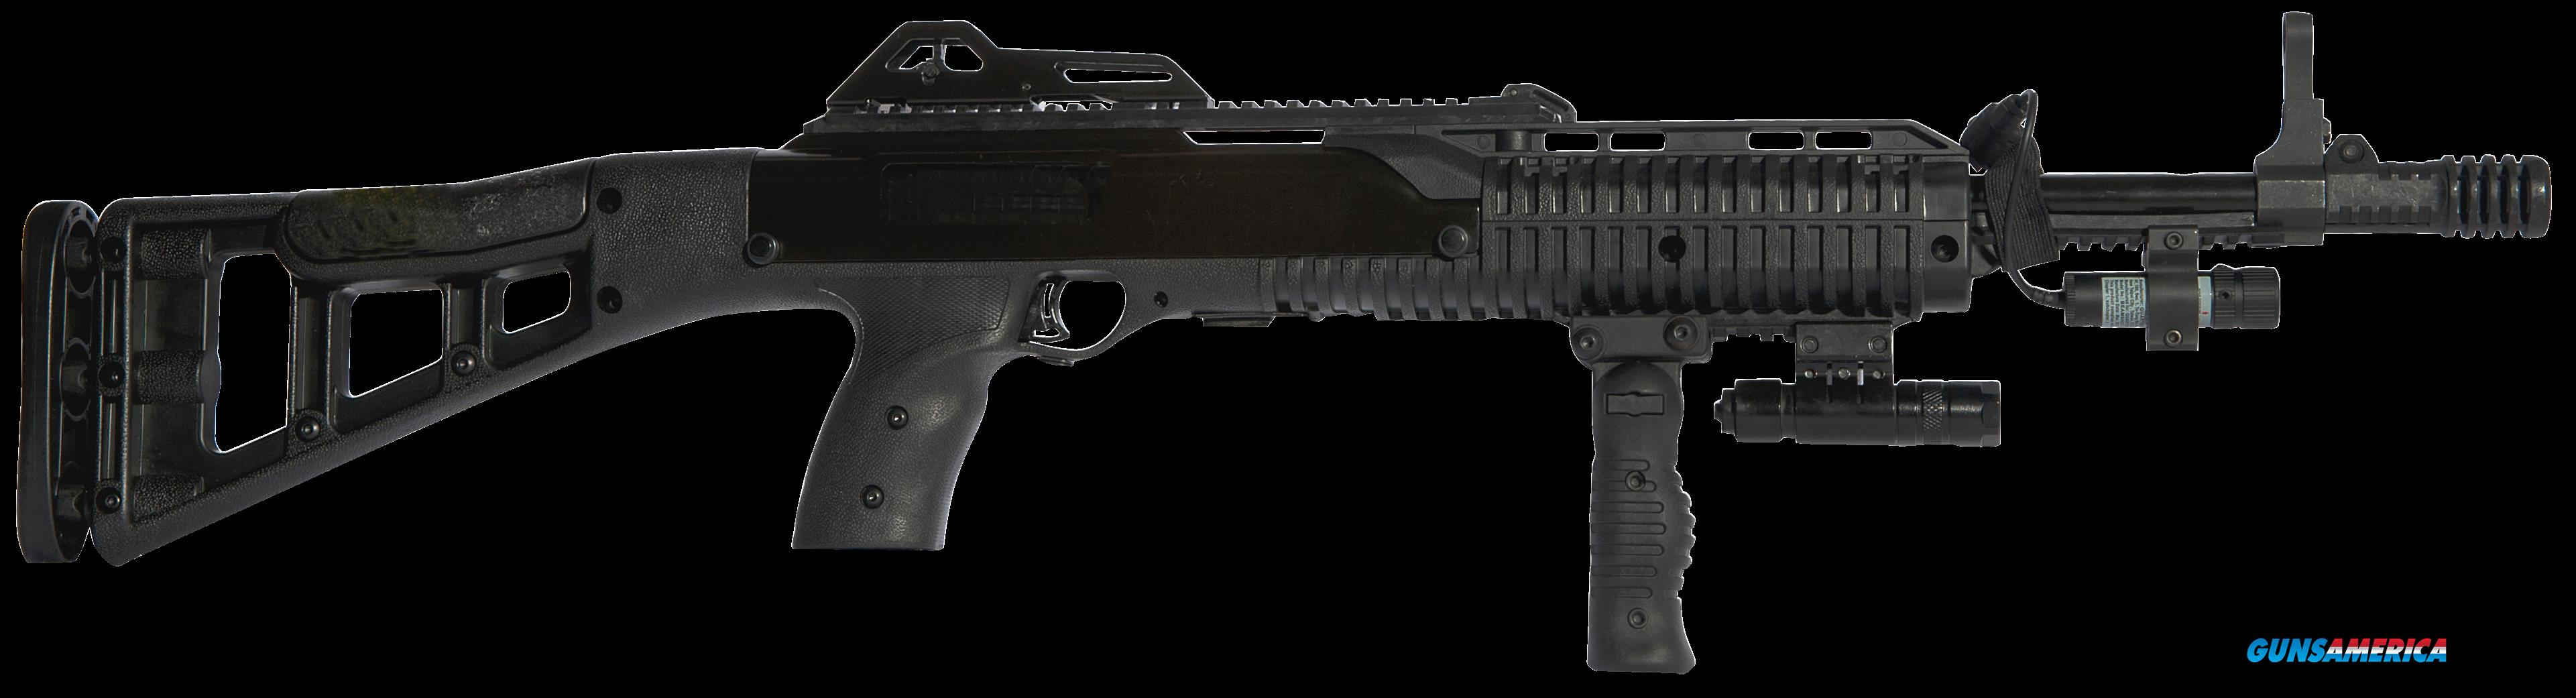 LDB Supply 4595TSFGFLLA 4595TS Carbine with Laser *CA Compliant* Semi-Automatic 45 Automatic Colt  Guns > Rifles > Hi Point Rifles